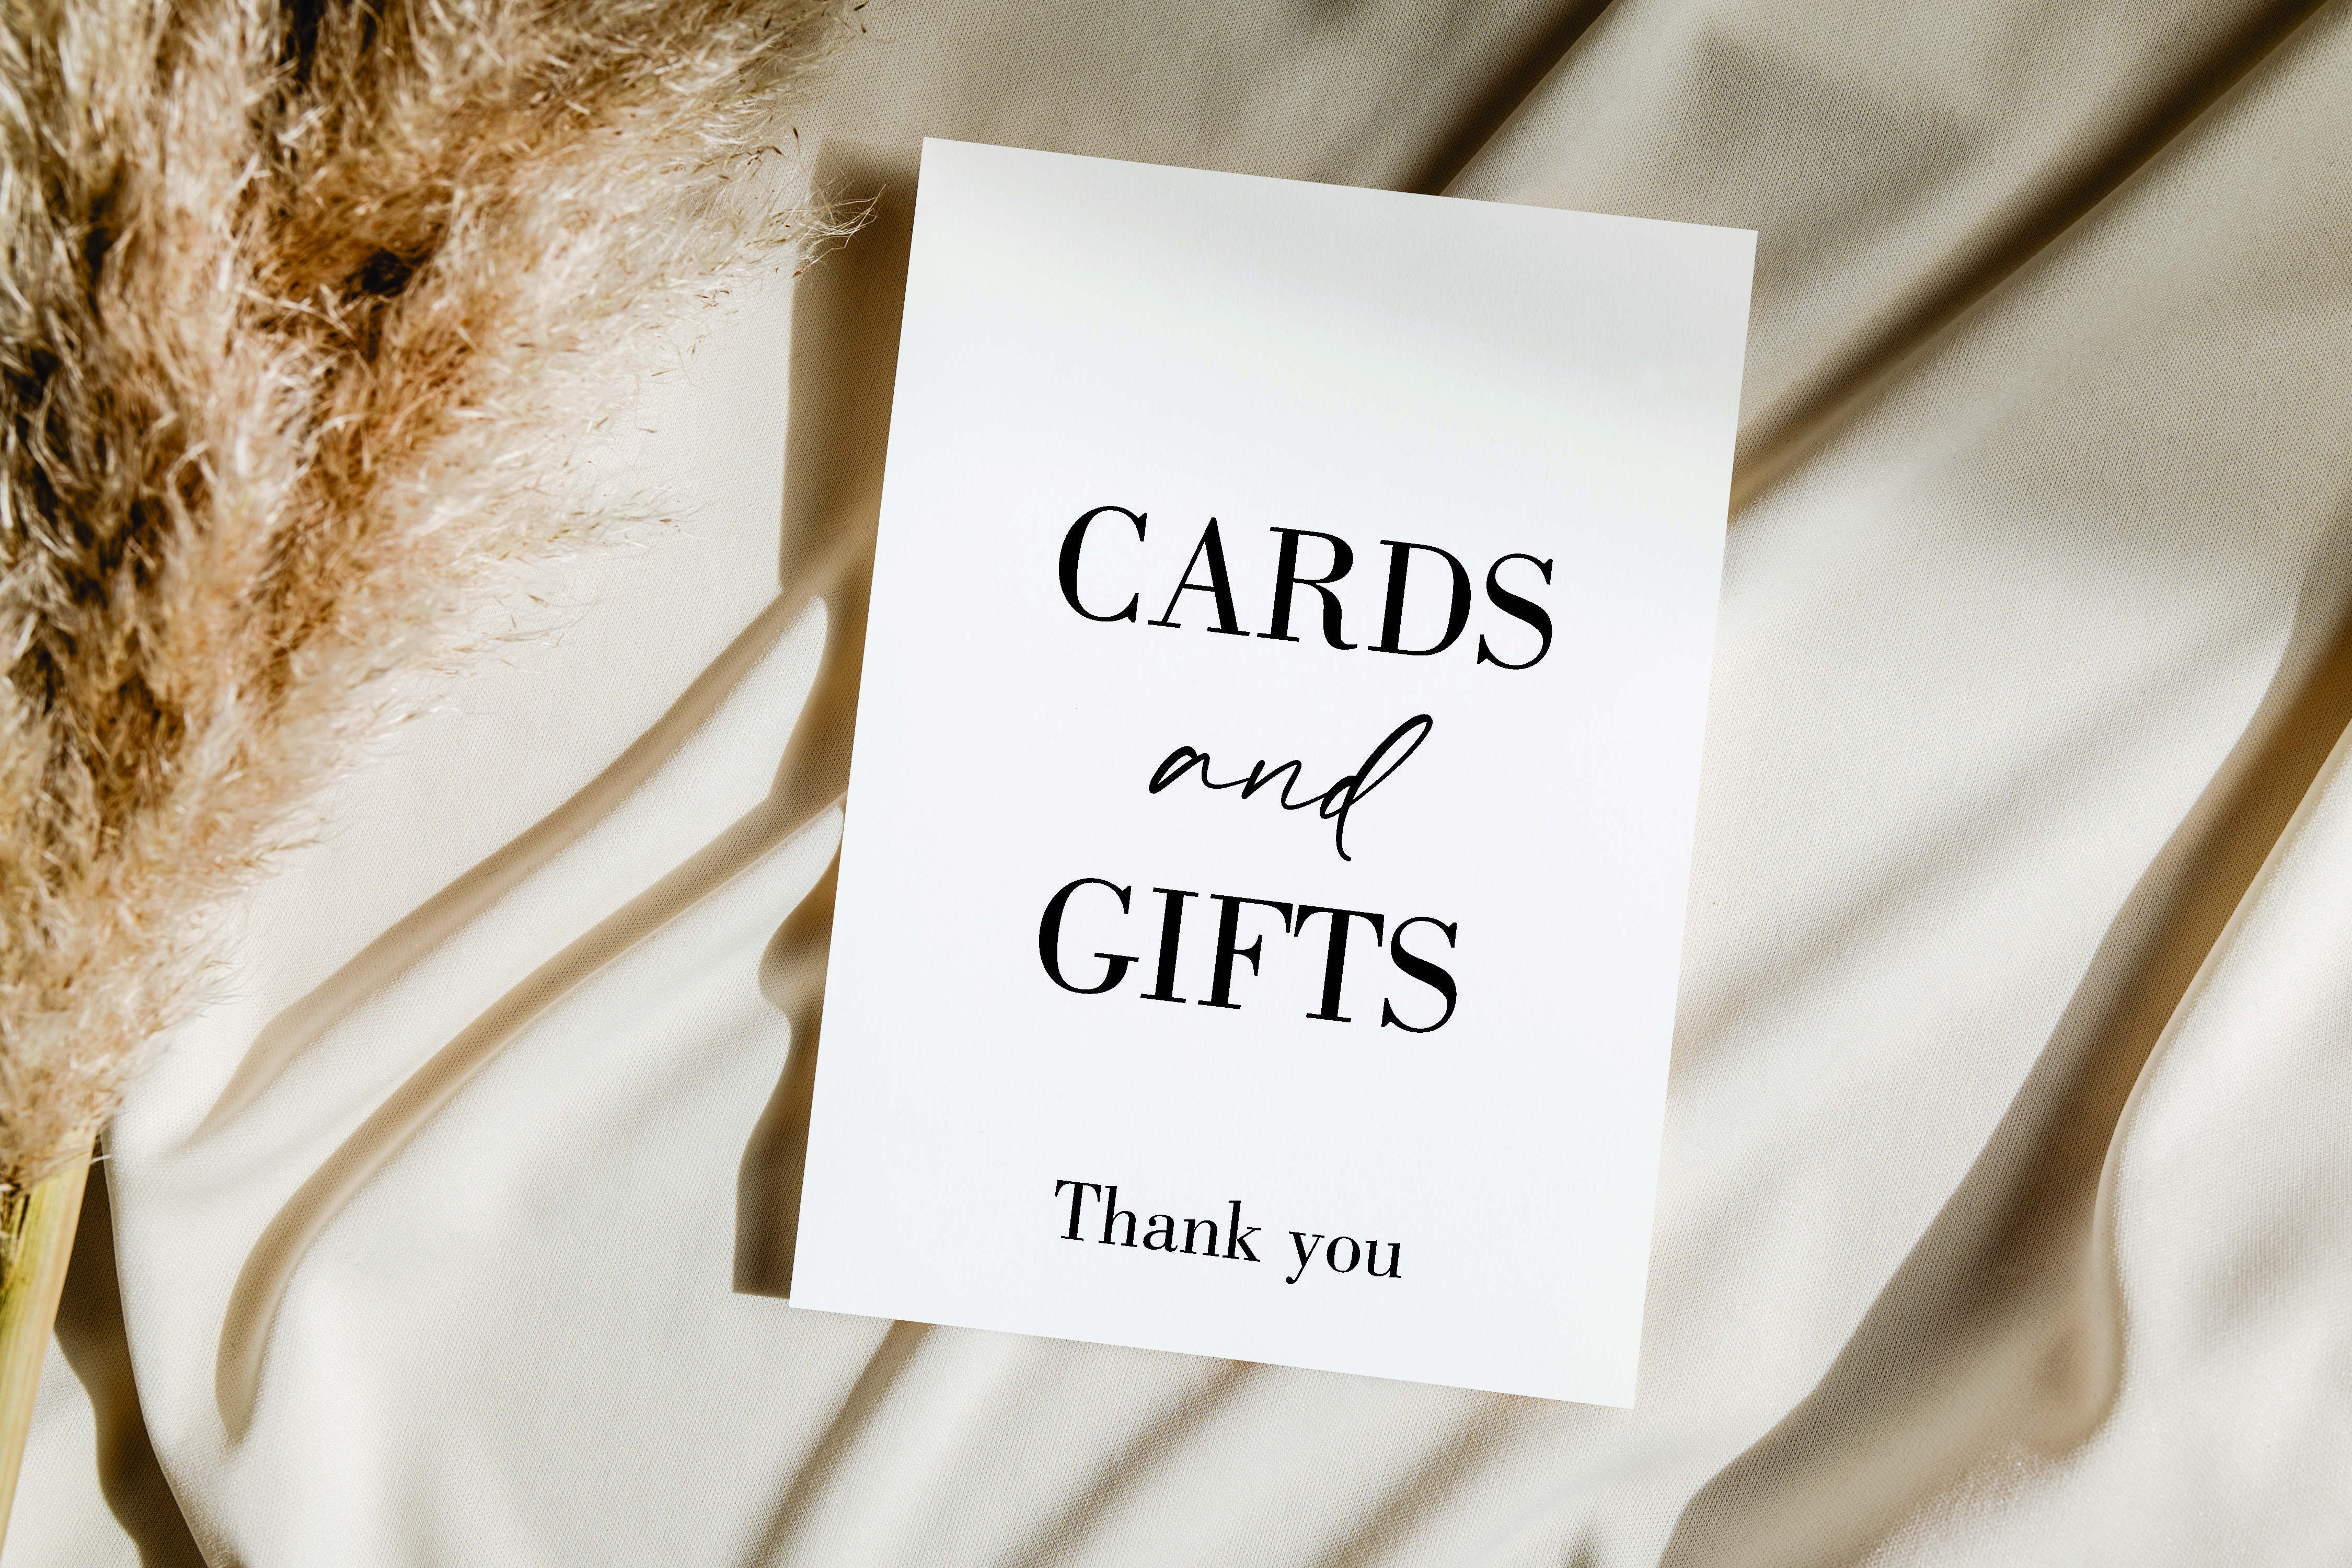 Cards & Gifts Thank you acrylic sign